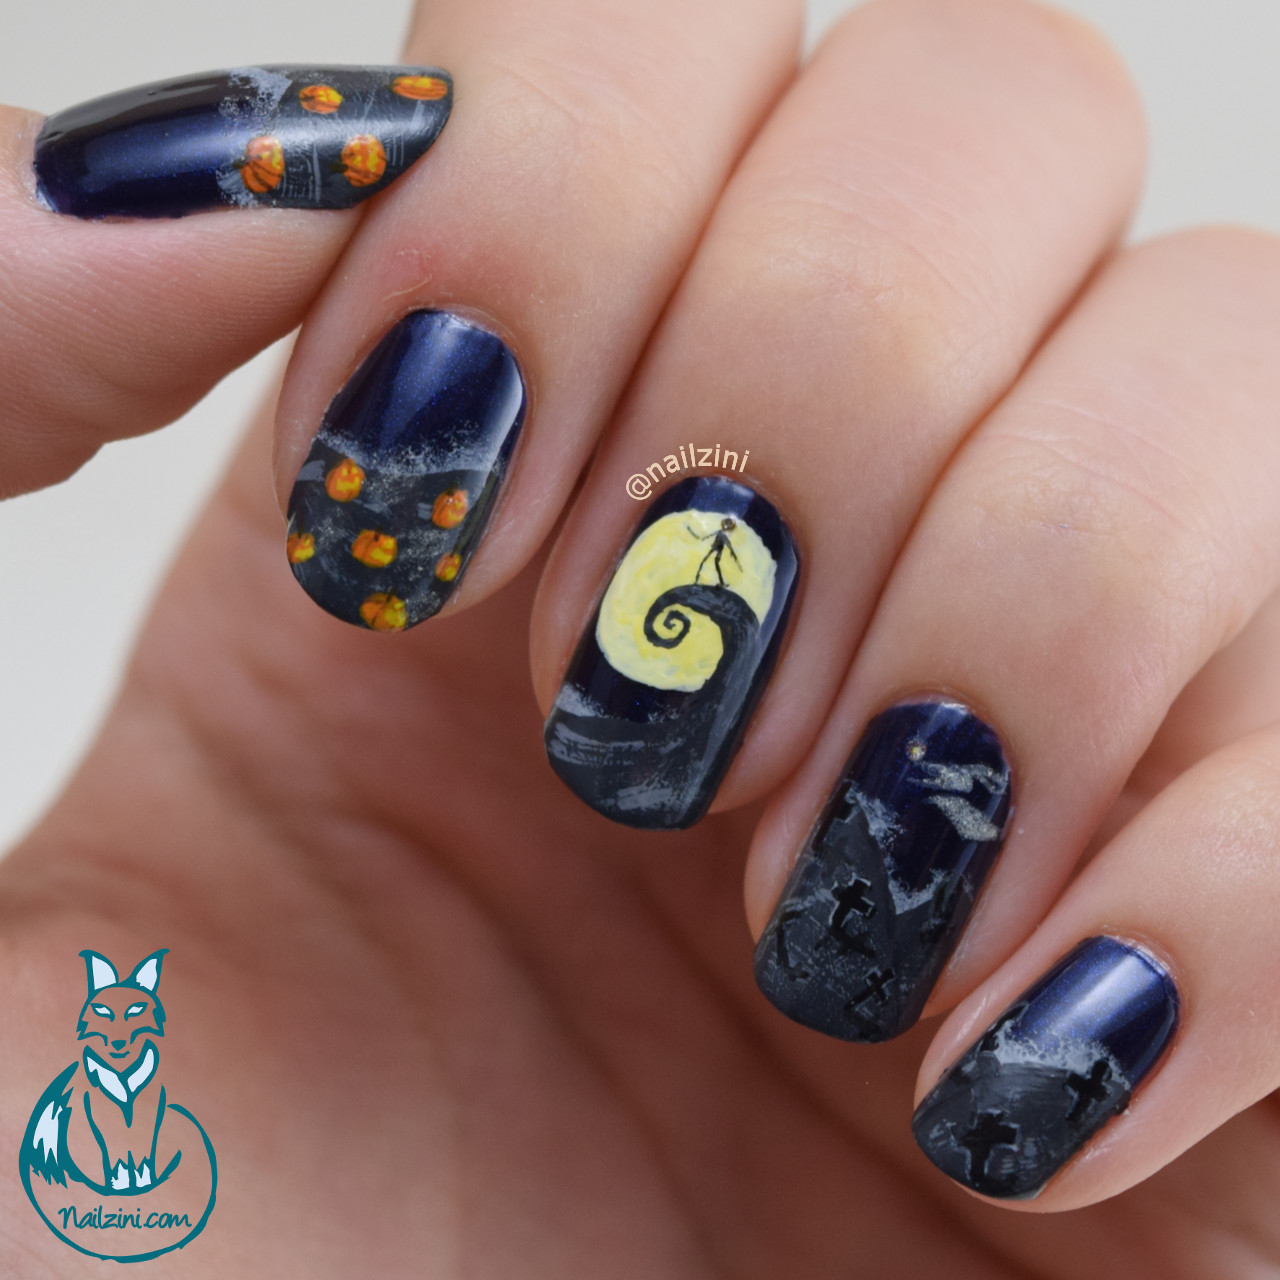 Nightmare Before Christmas Nail Art Nailzini A Nail Art Blog